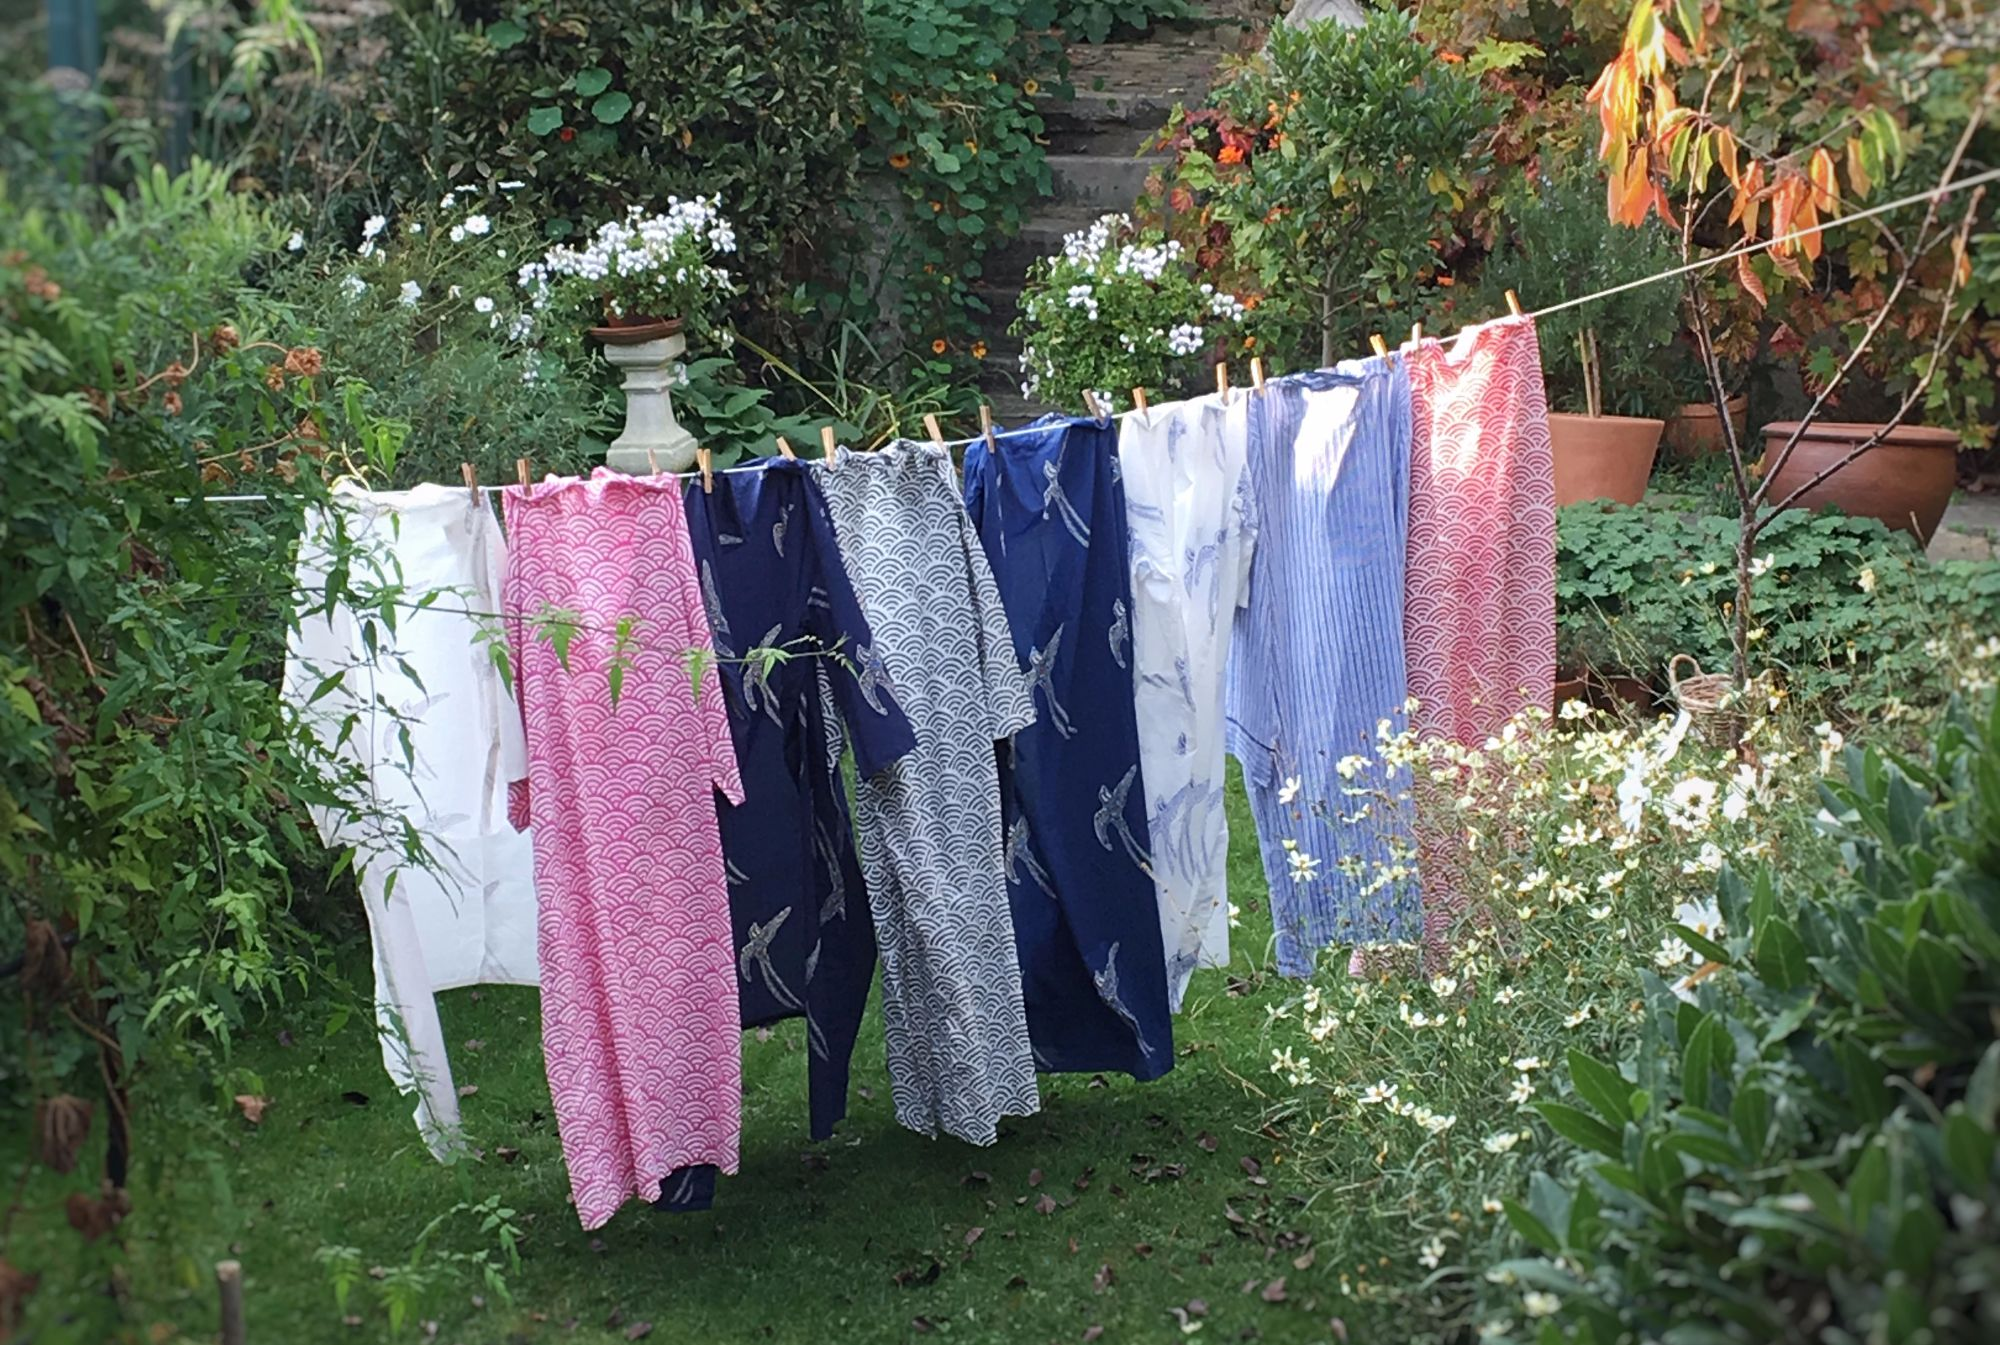 kimonos hung up on a washing line in the gardne